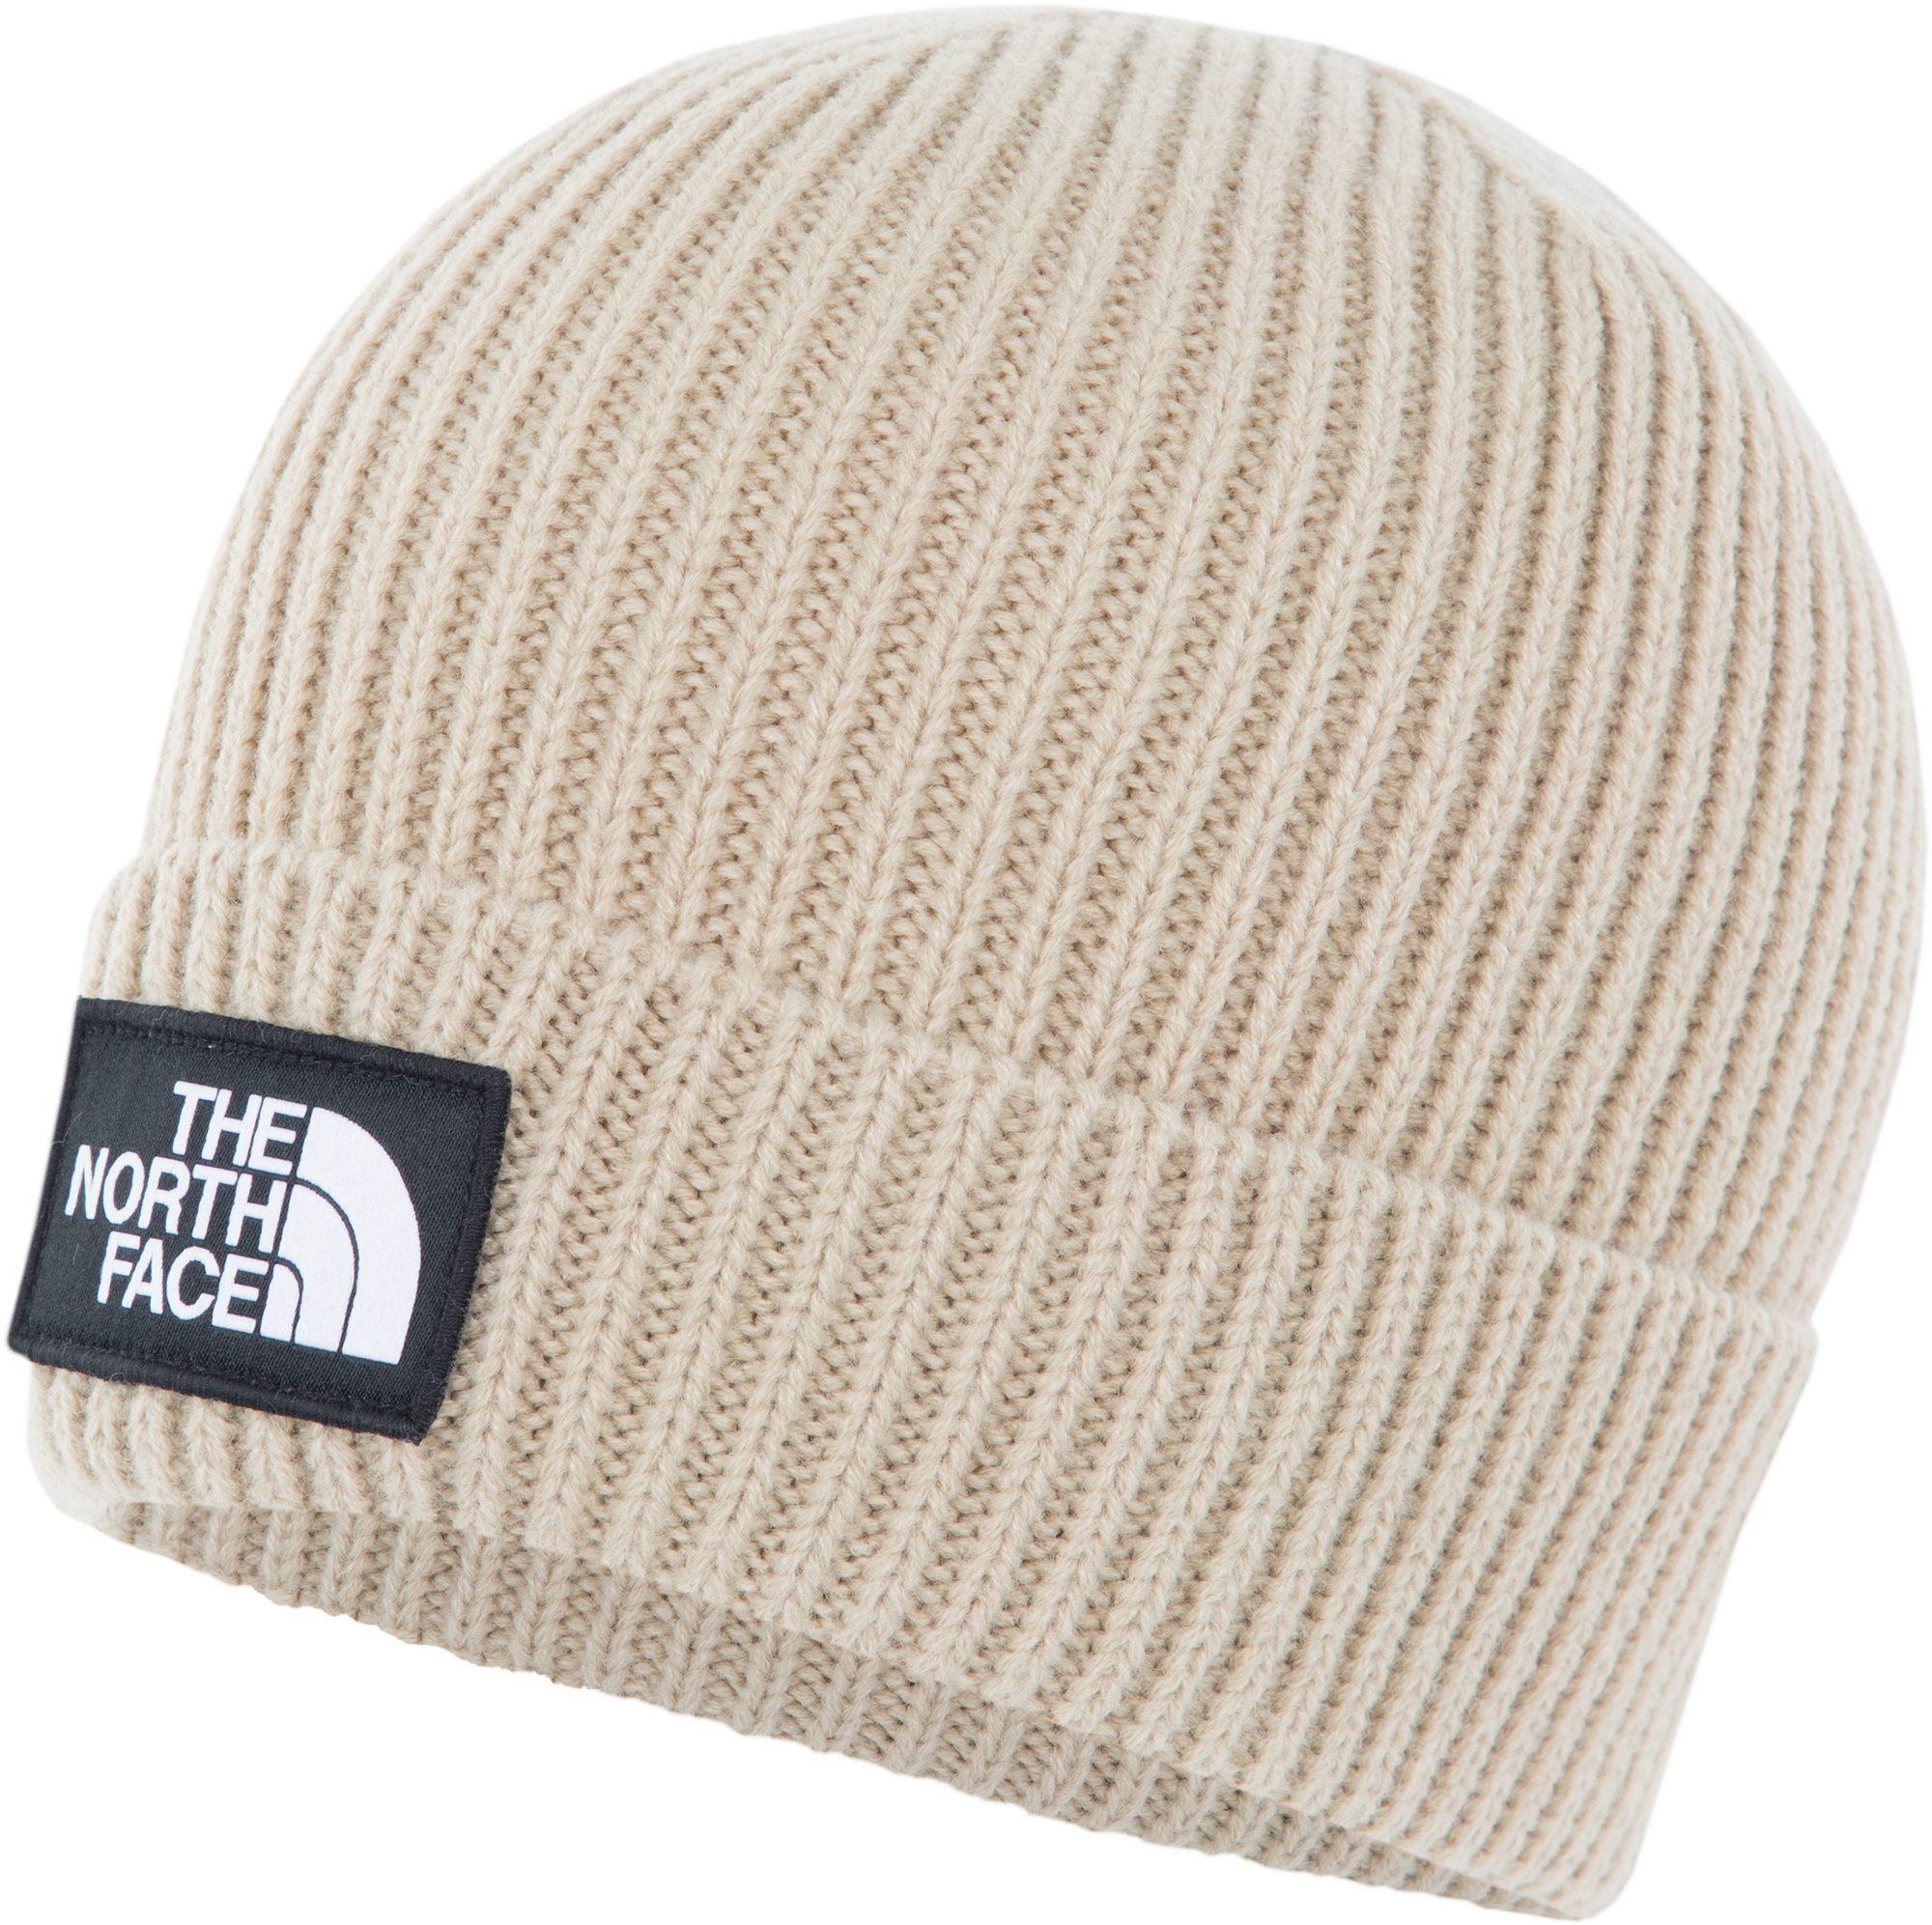 The North Face Шапка The North Face Logo Box Cuffed Beanie шапка the north face the north face surgent beanie черный lxl